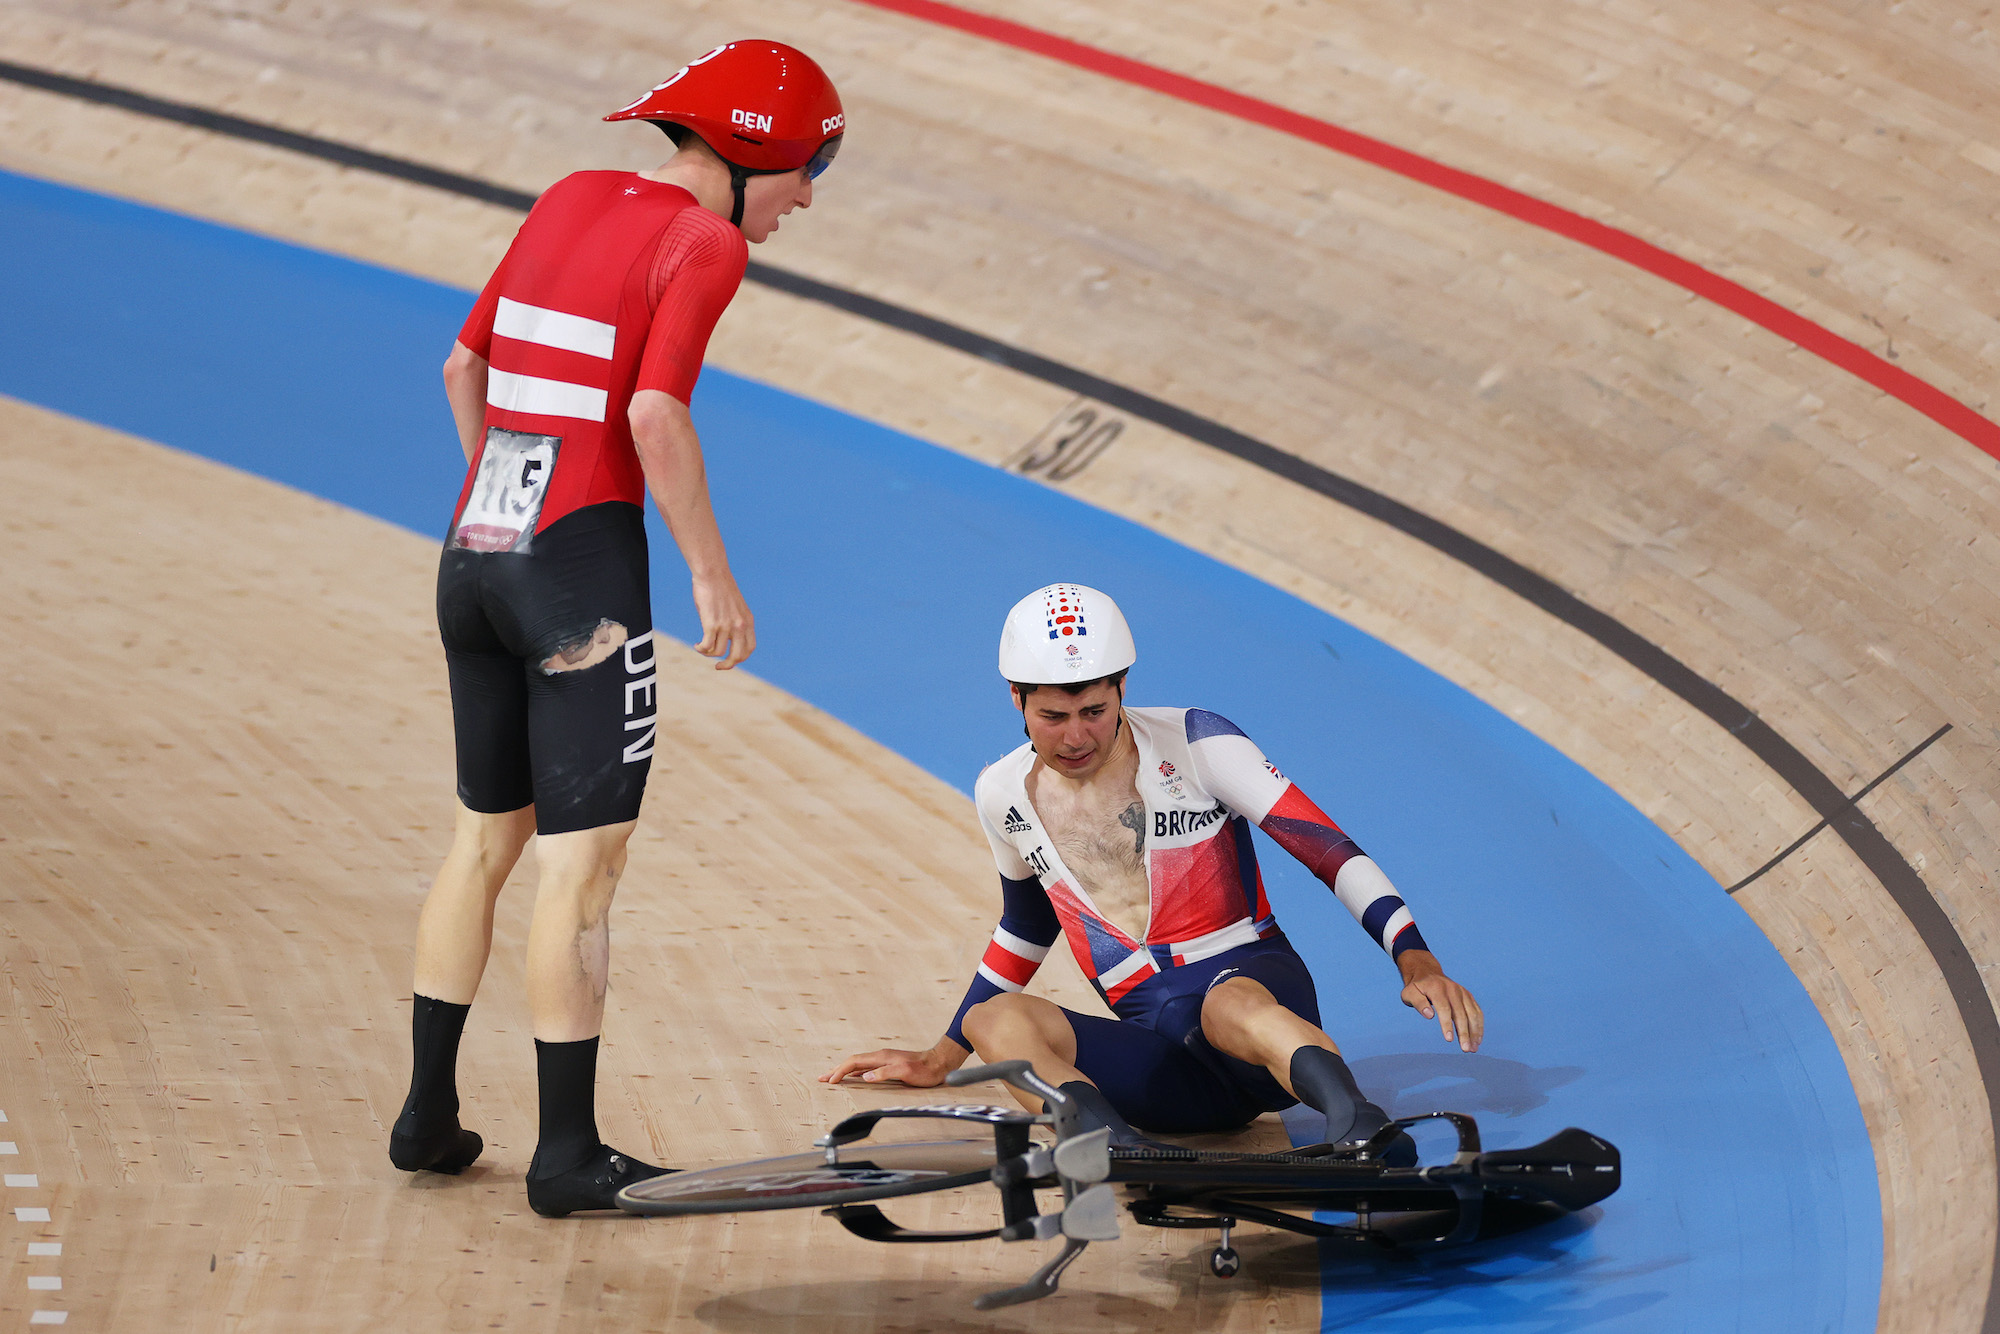 Frederik Madsen and Charlie Tanfield crash in the team pursuit at Tokyo 2020